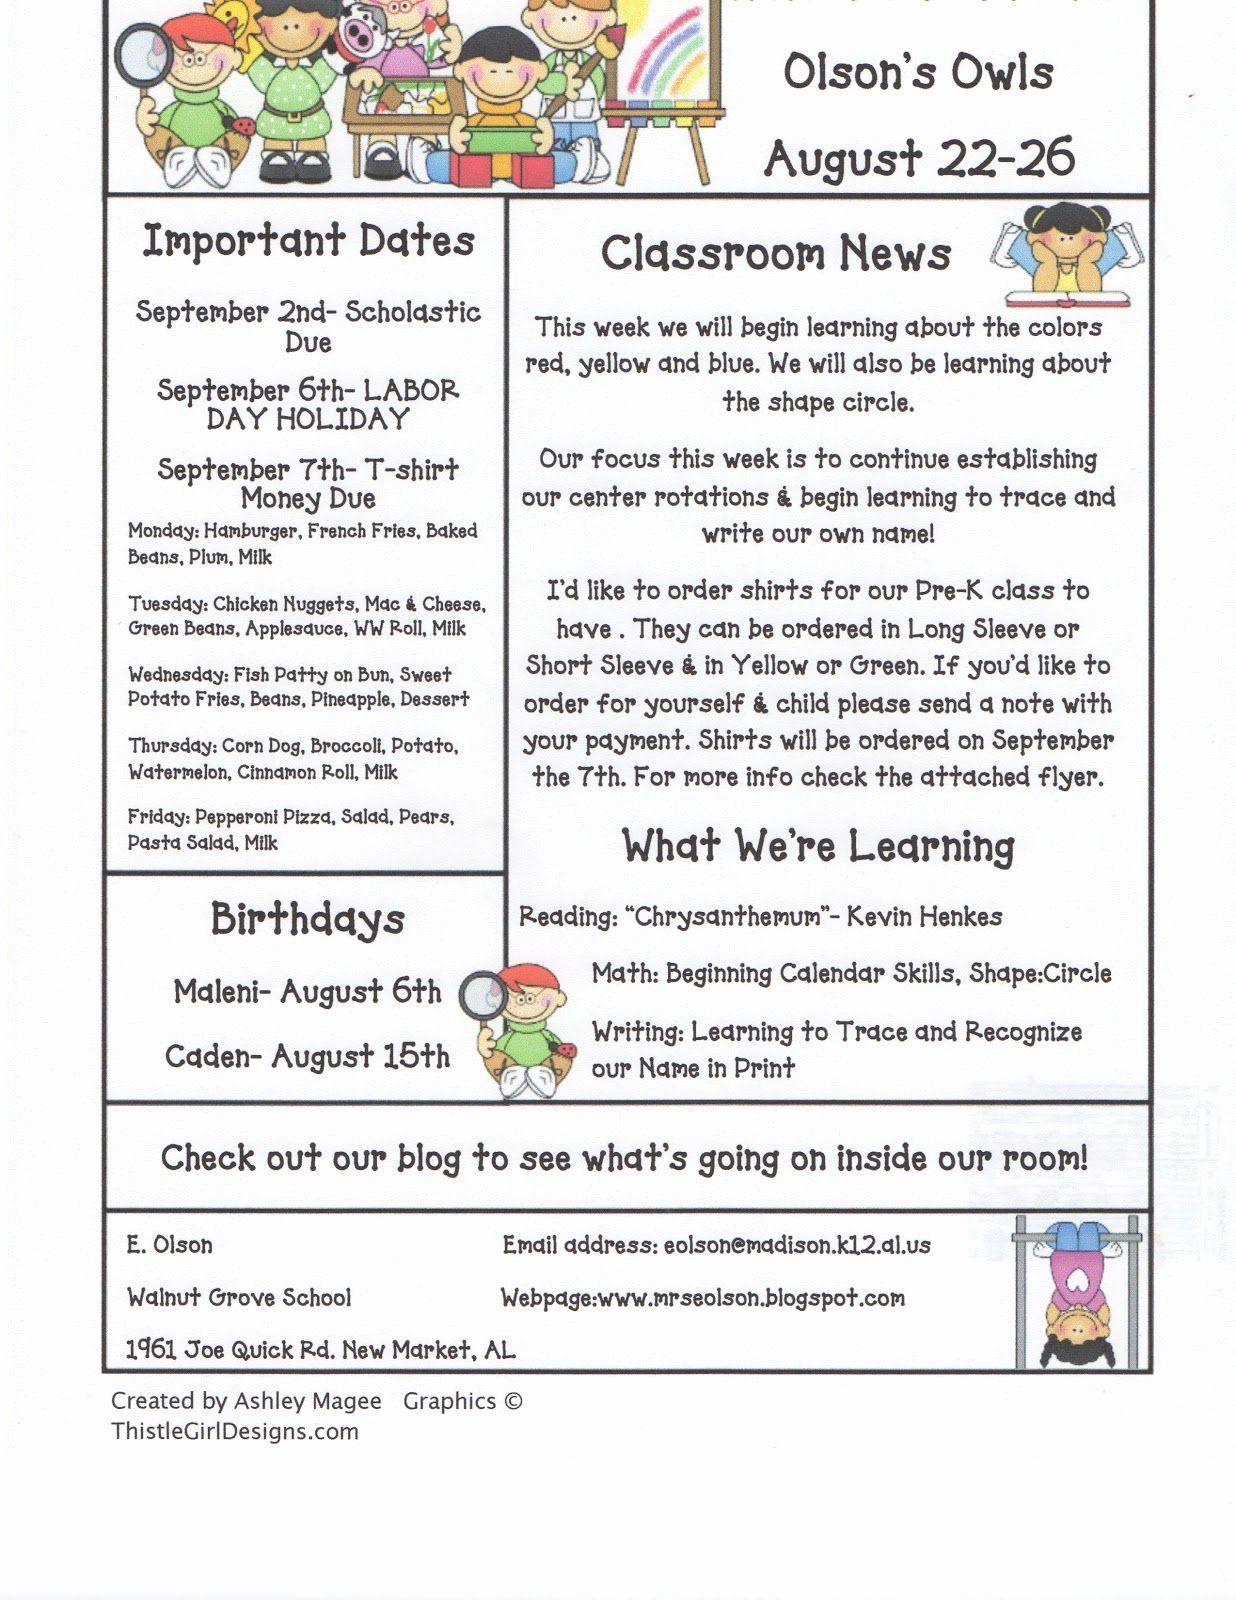 Weekly Classroom Newsletter Template Awesome December School Newsletter Ideas